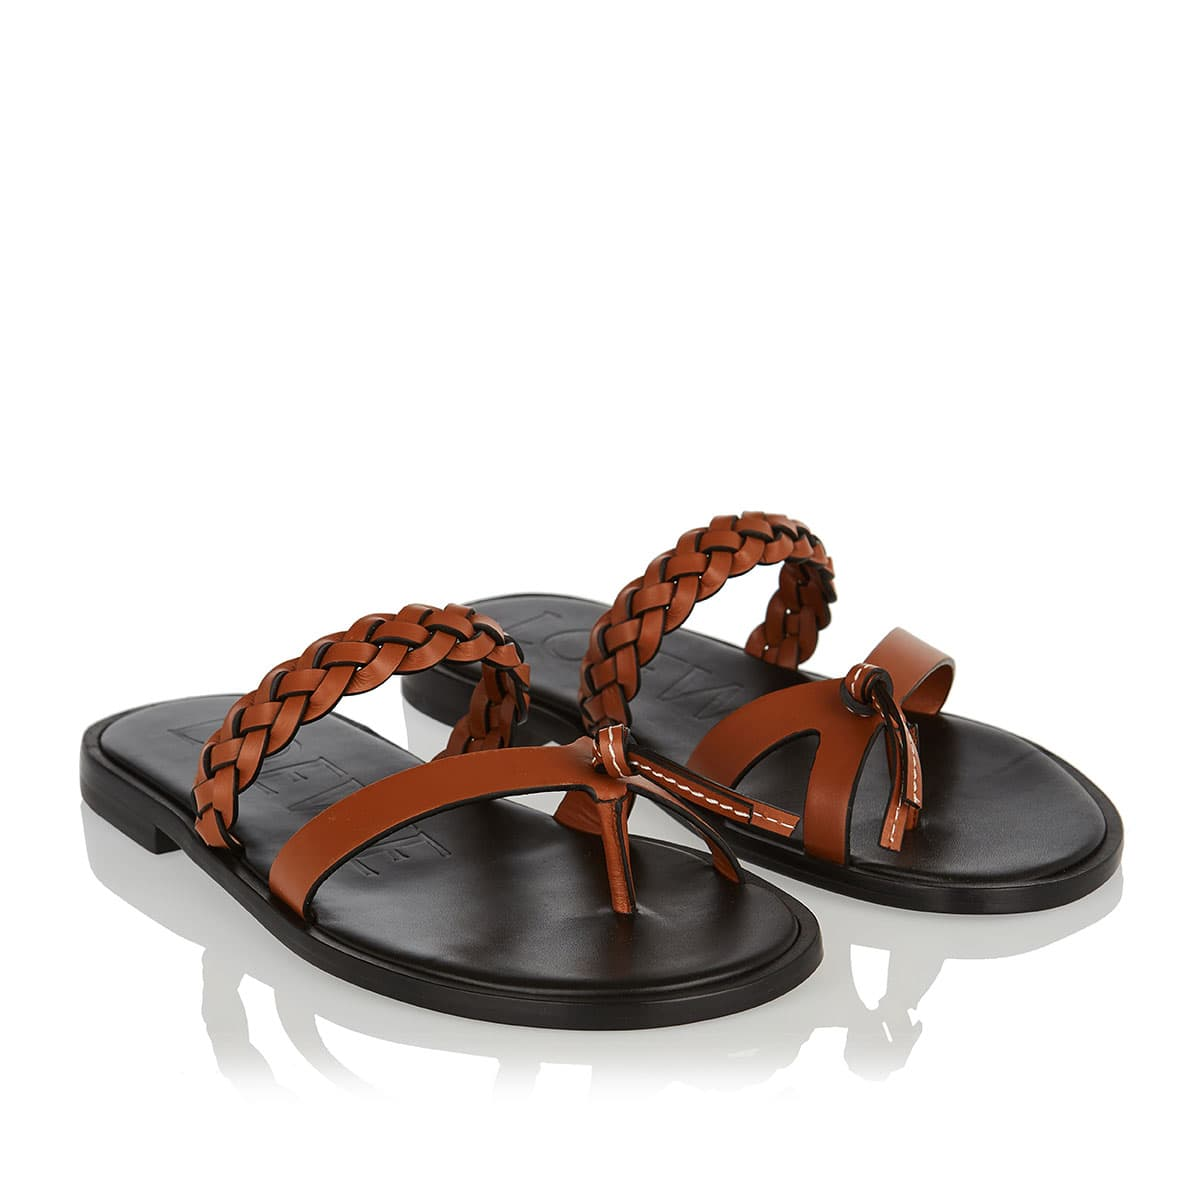 Braided flat leather sandals